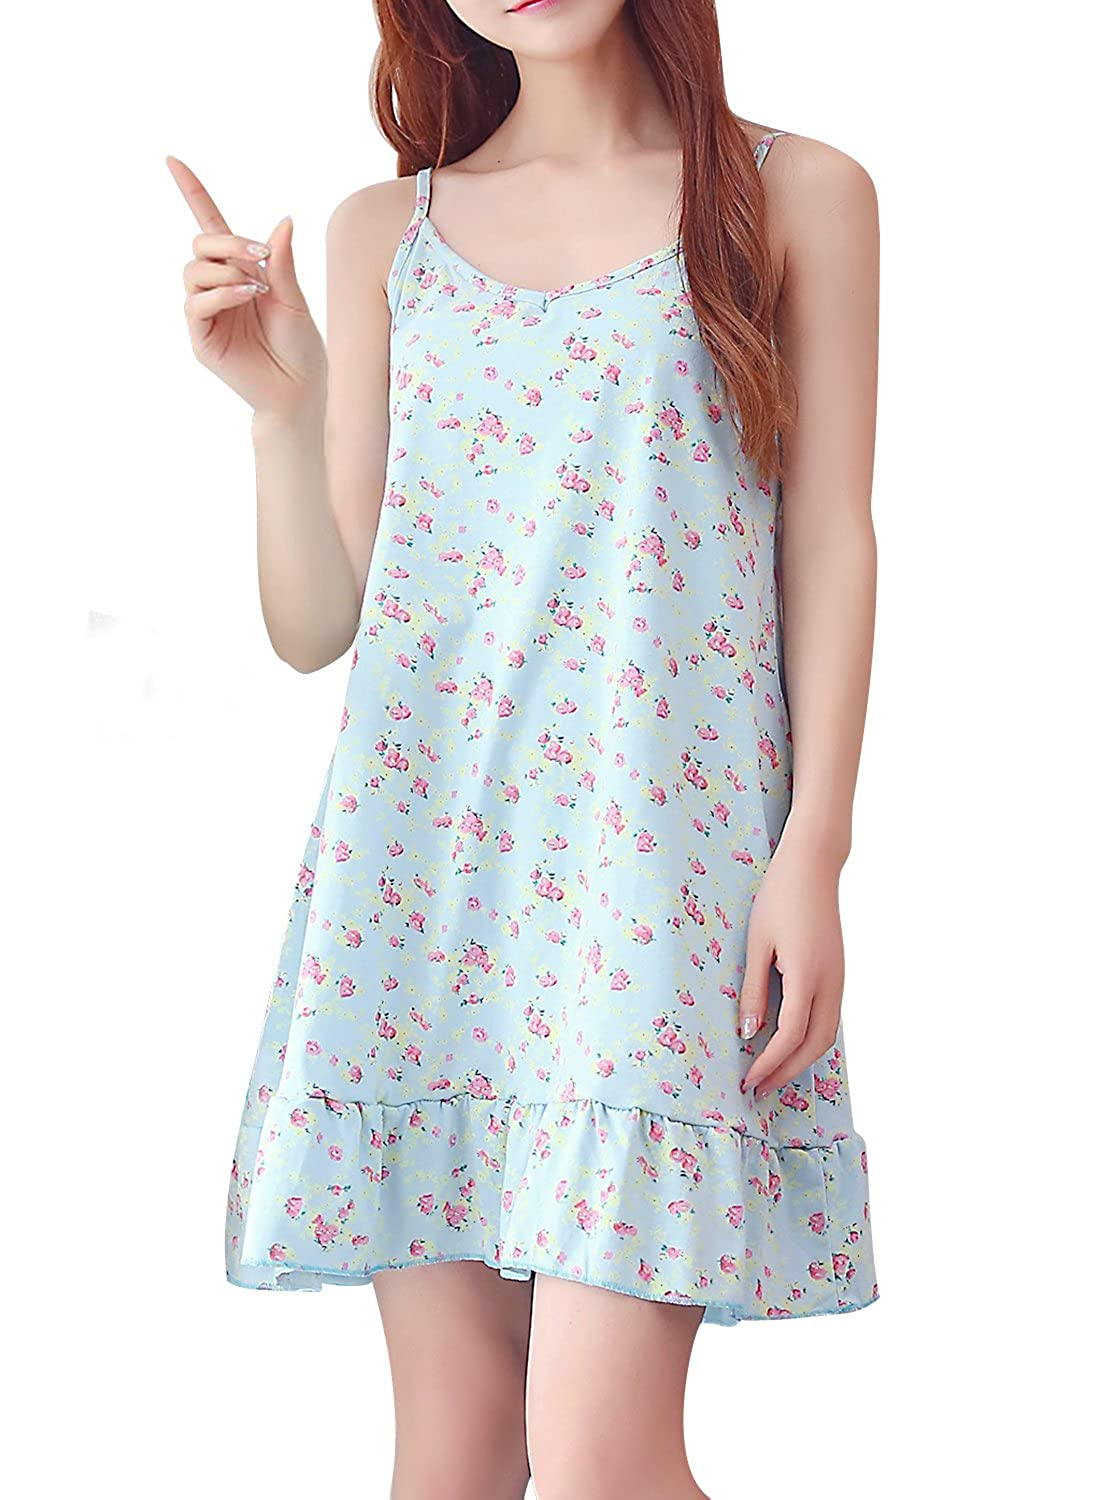 BOOPH Girls Nightgown, Big Girl Flower Sleeveless Sleepwear Spaghetti Strap Nightwear Dress for Teenage Girls 9-16 Year Old